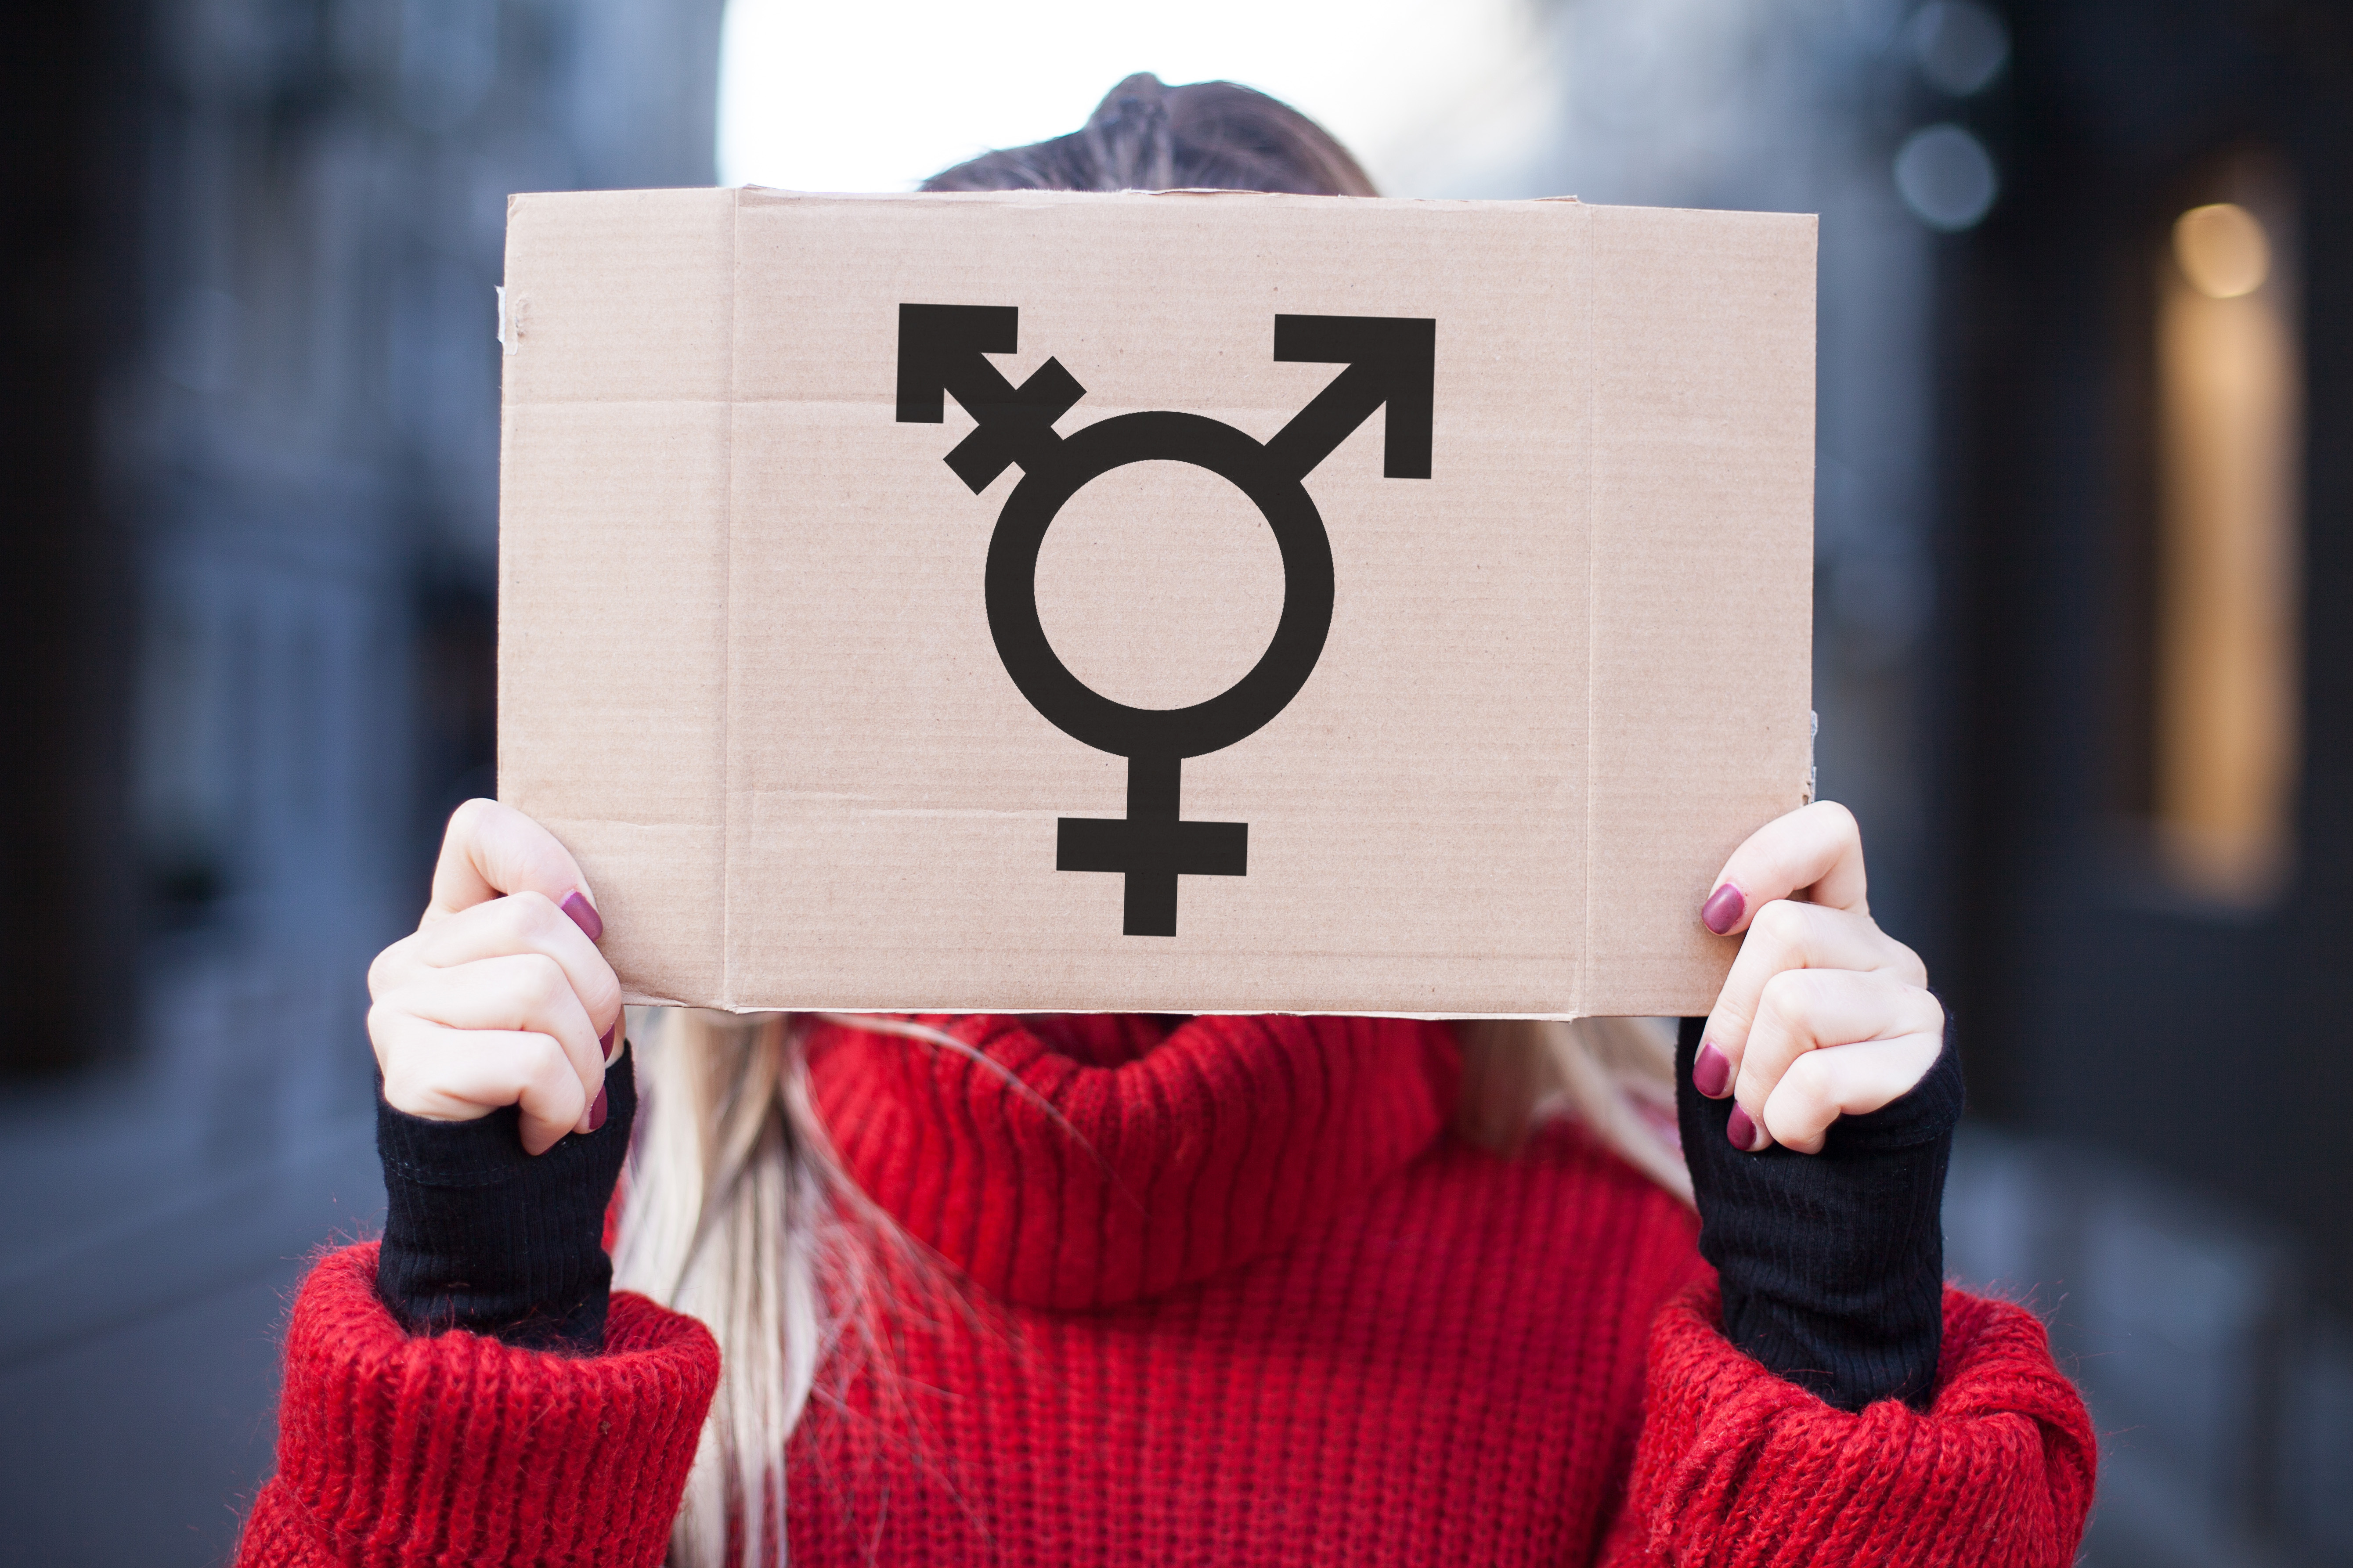 The symbol of the transgender in hands on a cardboard plate, covering (hiding) the face. - Image (Shutterstock/AndrilZatsrozhnov)